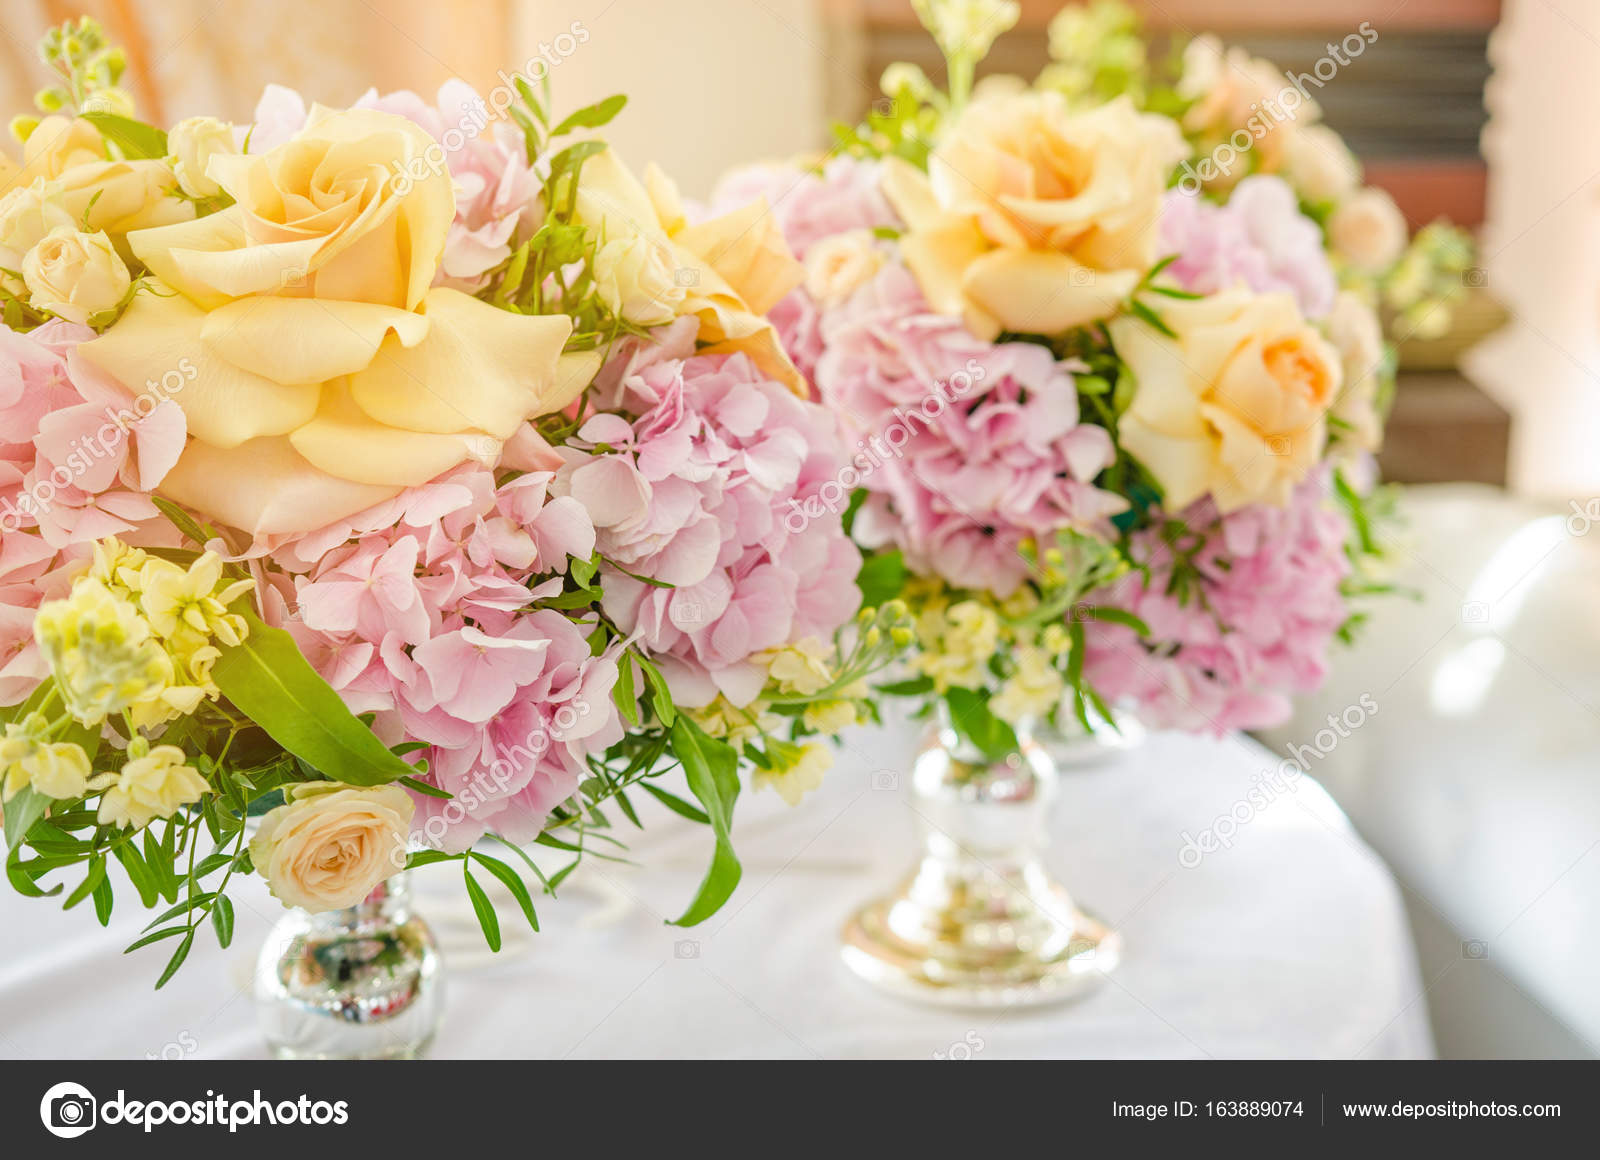 Big Bouquet Of Pink Hydrangeas And Yellow Roses Stands On Dinner